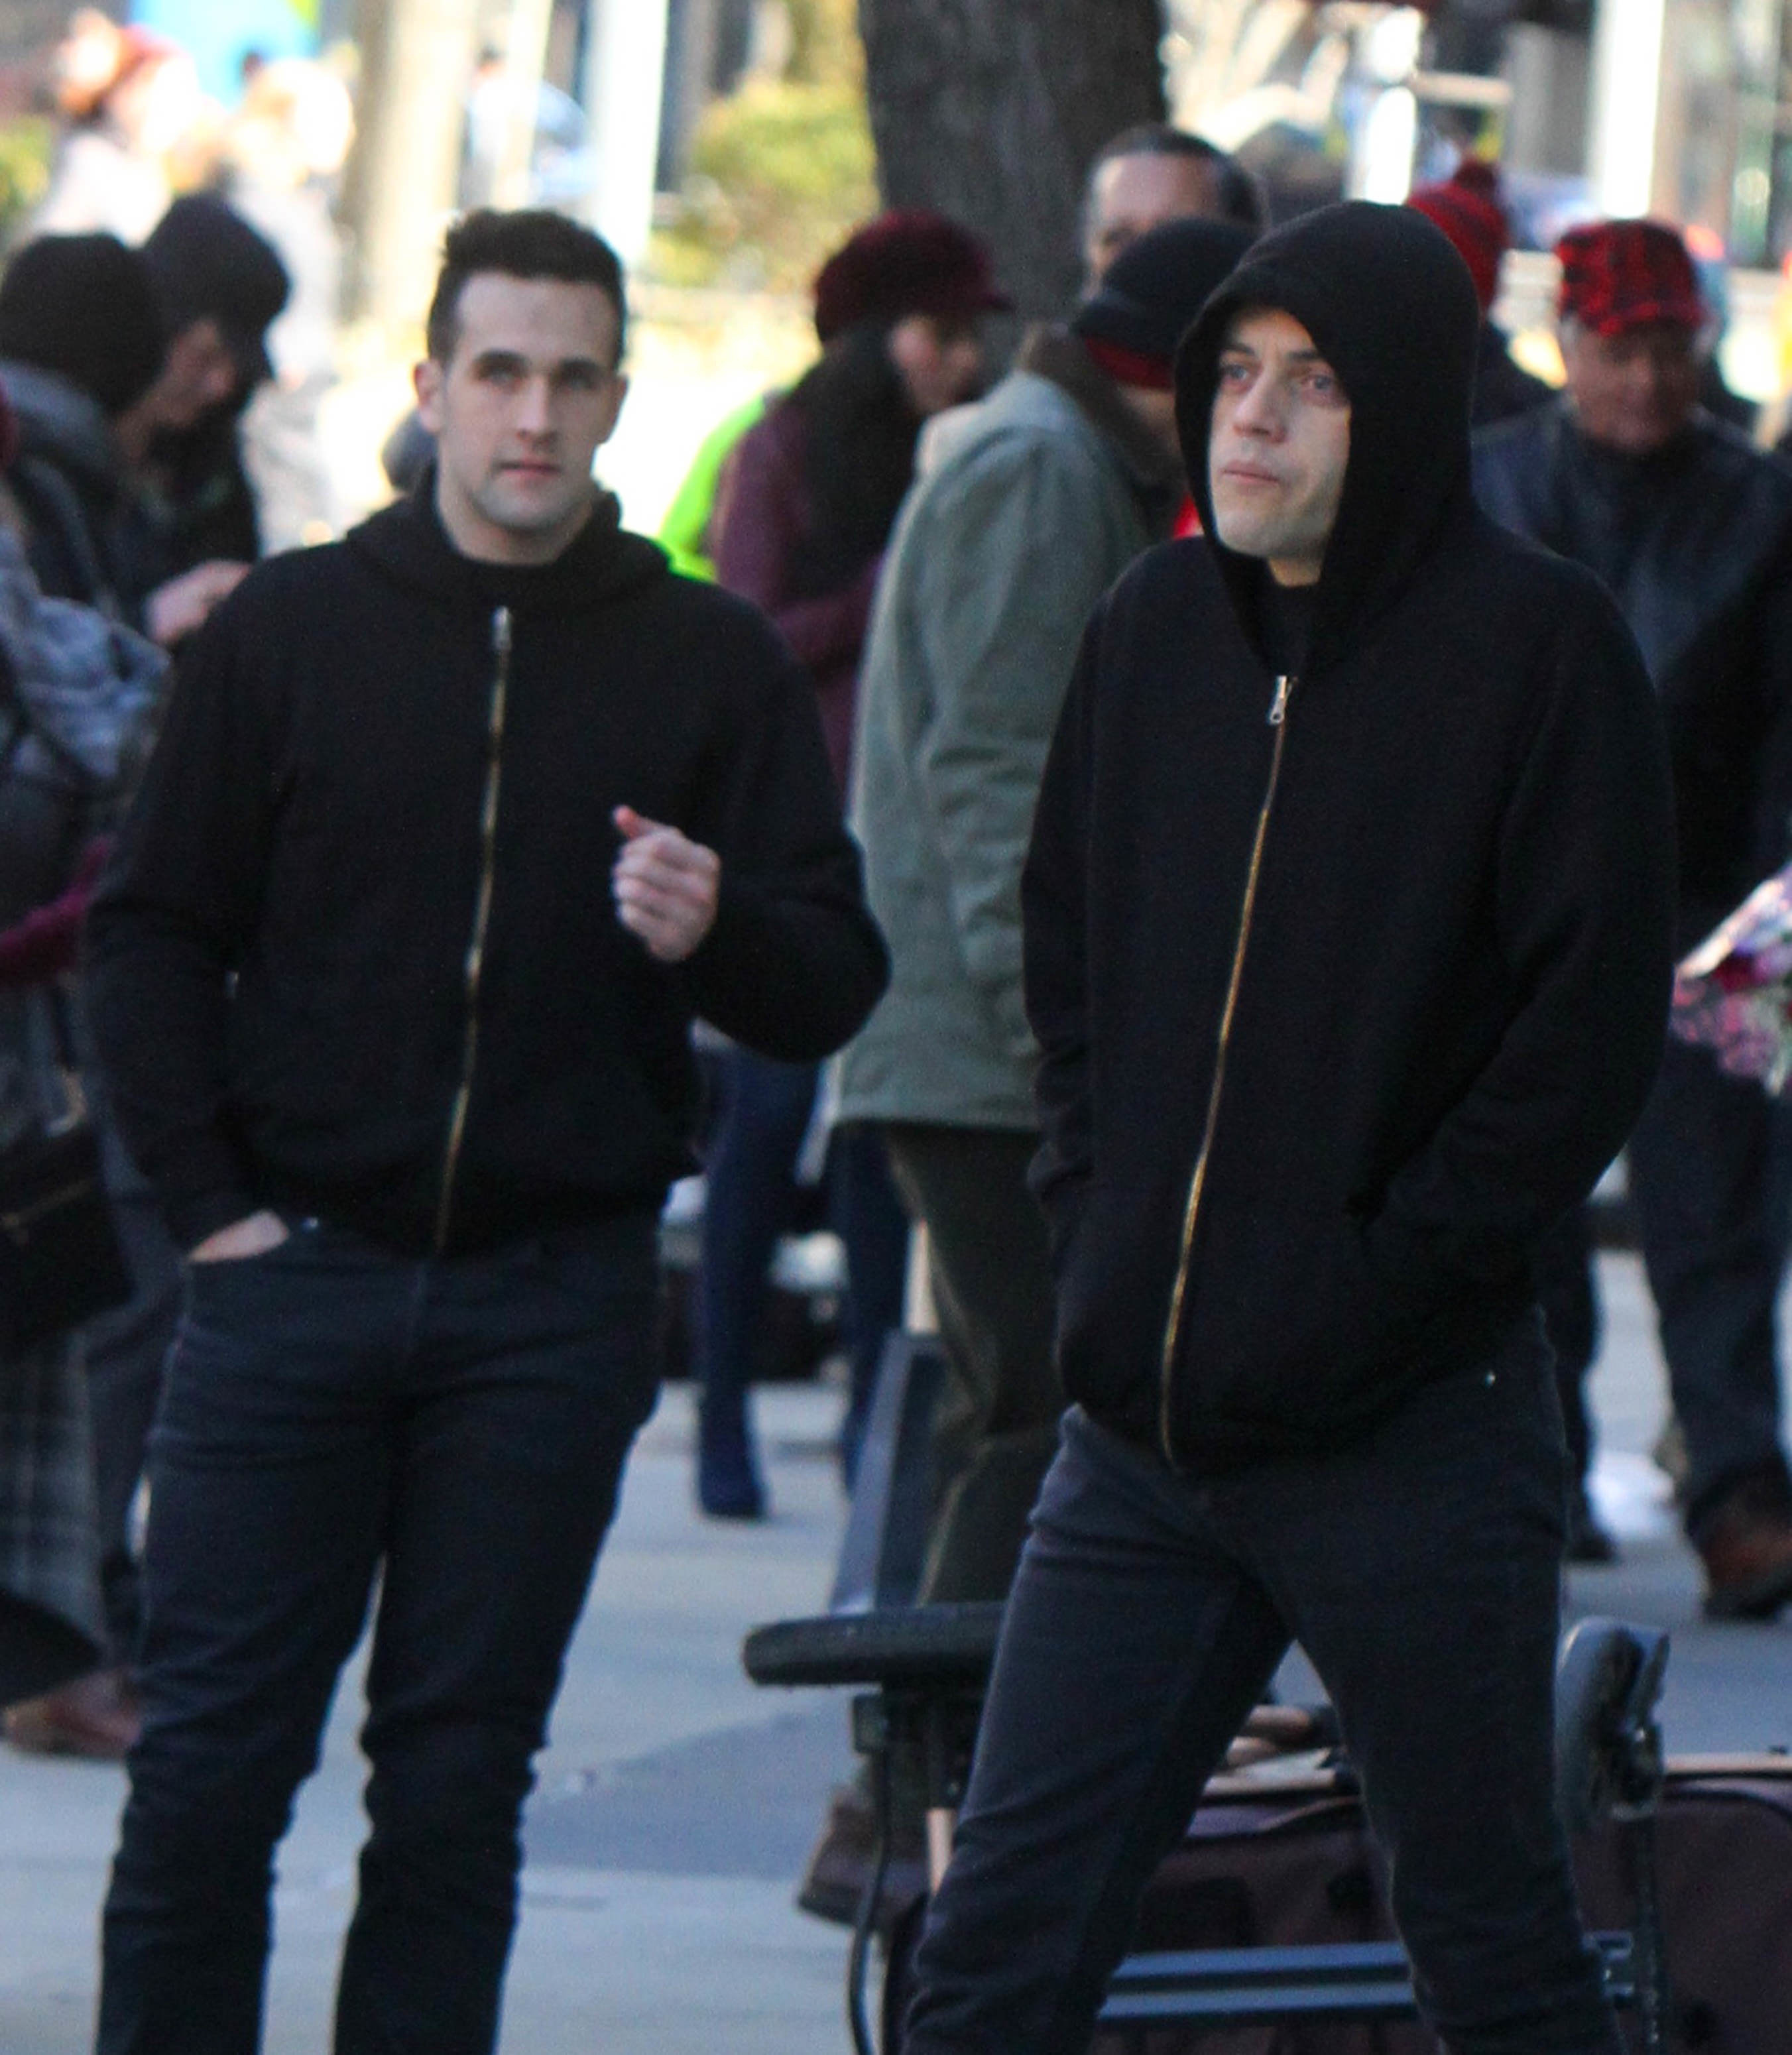 Rami Malek and his stunt double wearing black hoodies while filming